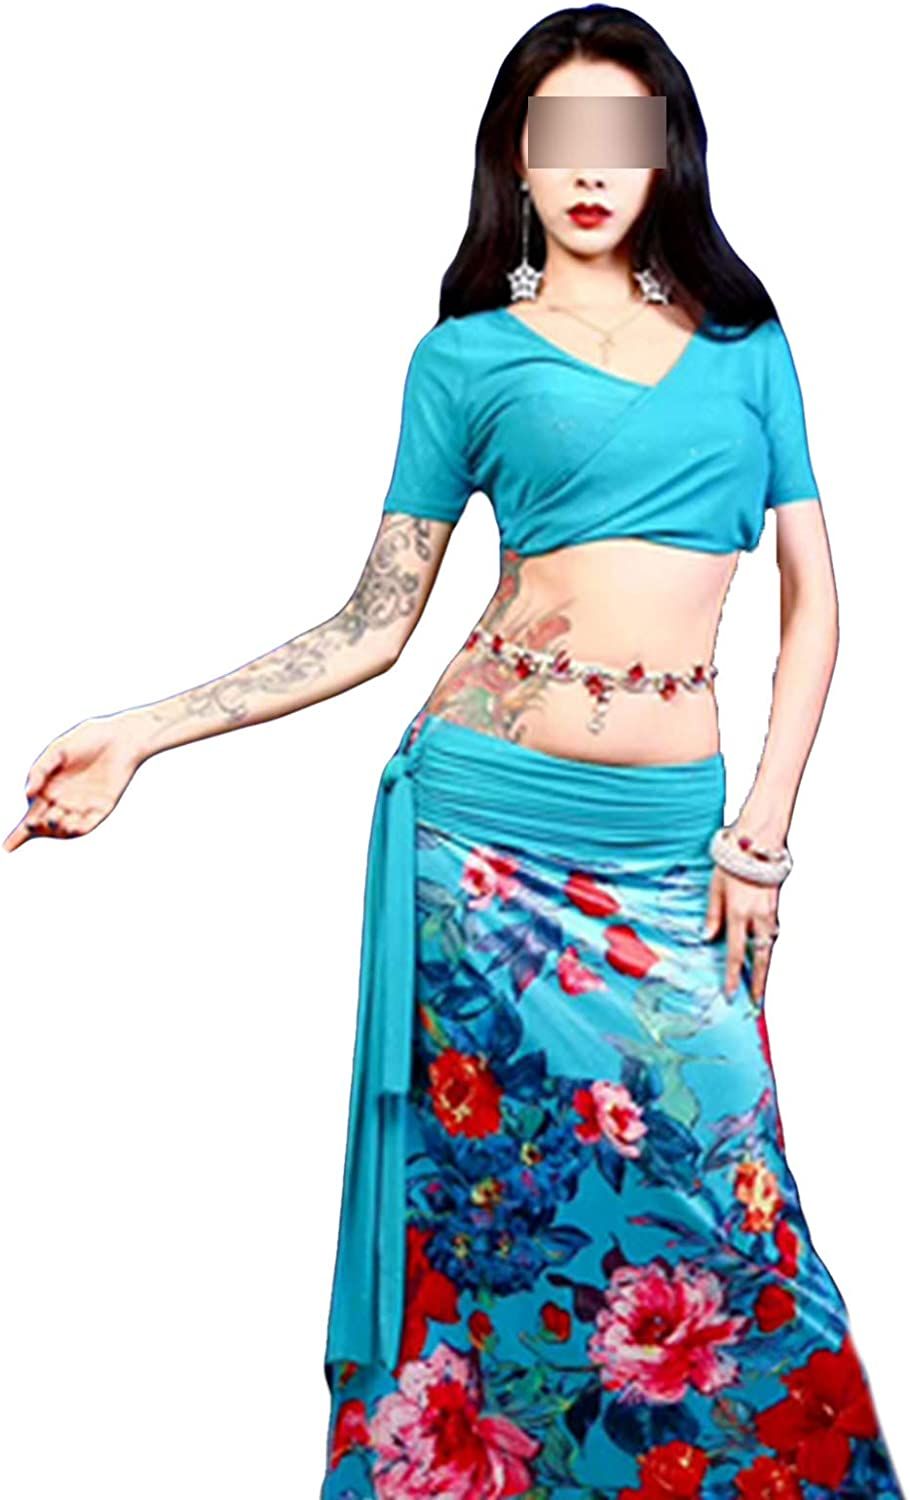 Belly Dance Suit Female Adult High-end Temperament Top Long Skirt Performance Clothes Set